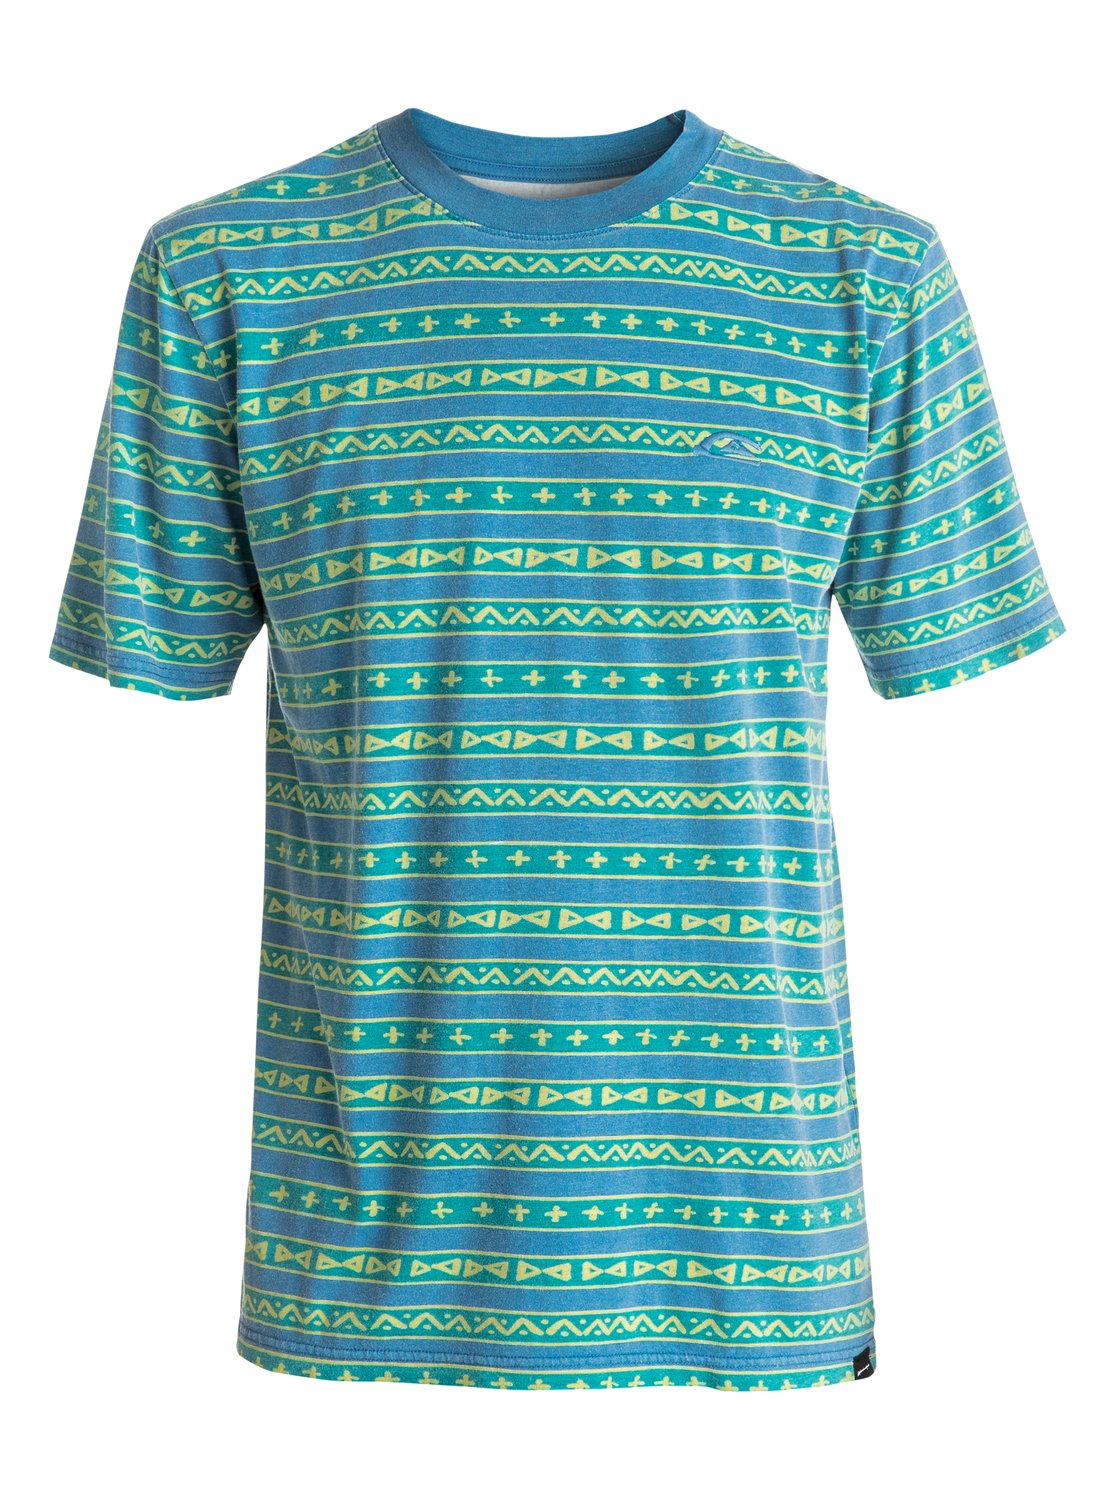 Gone Tribal - Surf tee pour Homme - Quiksilver